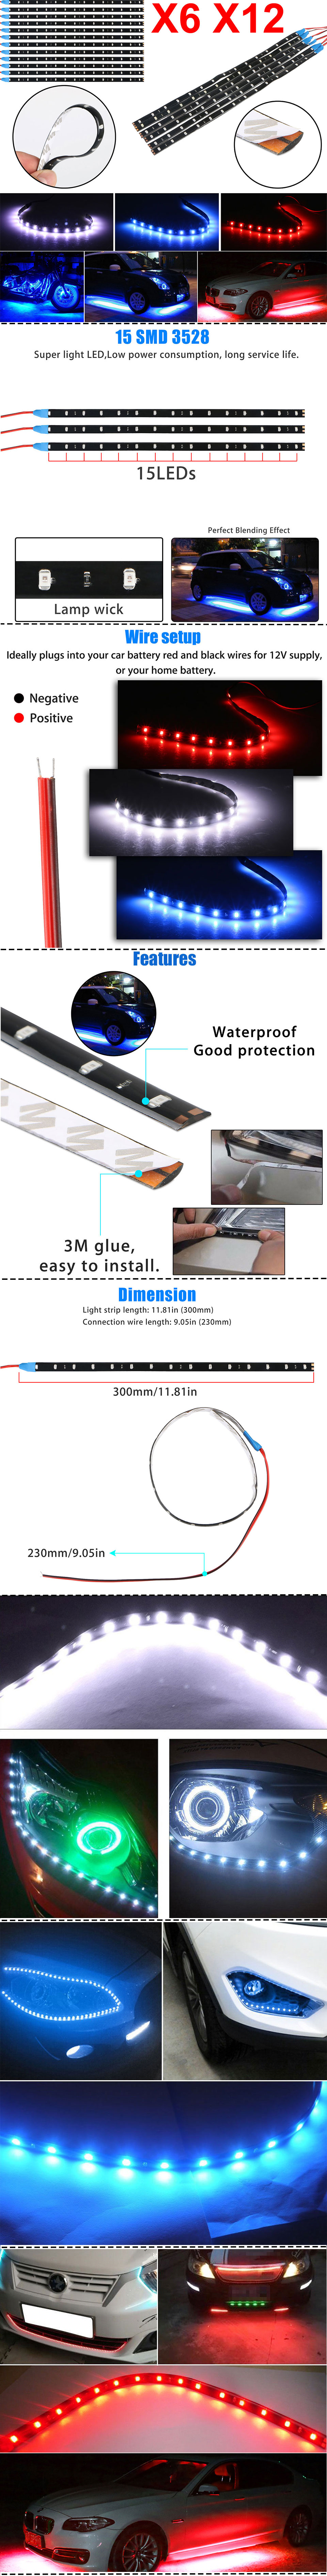 hight resolution of high quality led strip lights for home or automotive use comes in short lengths for ideal customization without the need to cut or sever